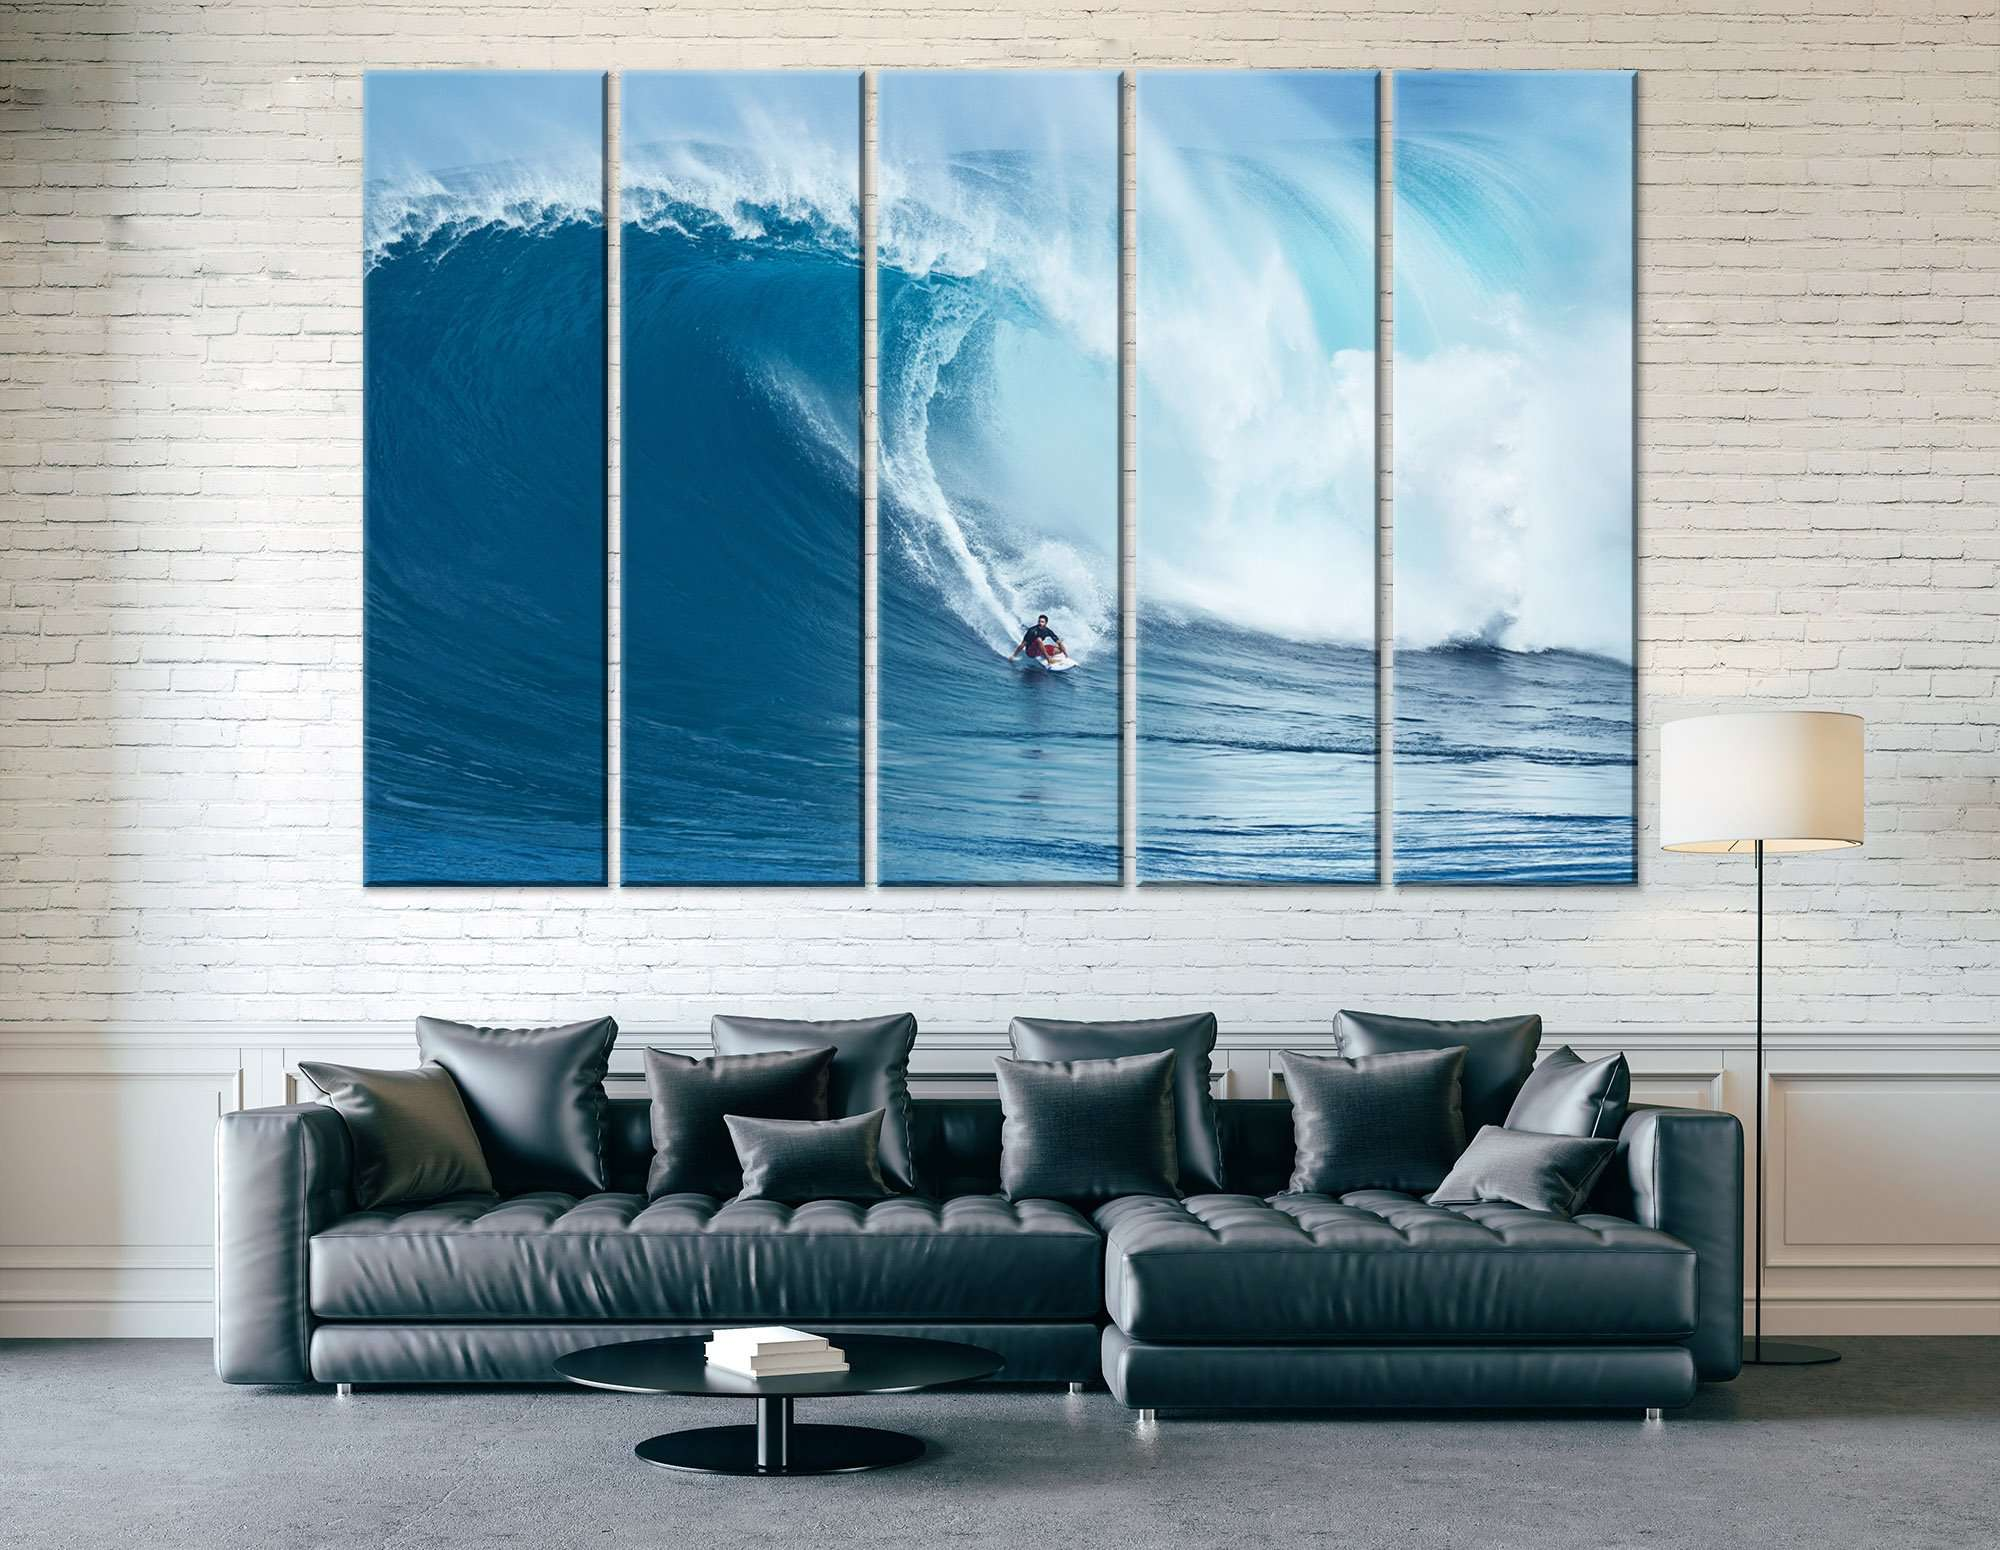 Surfing the Wave - Canvas Print